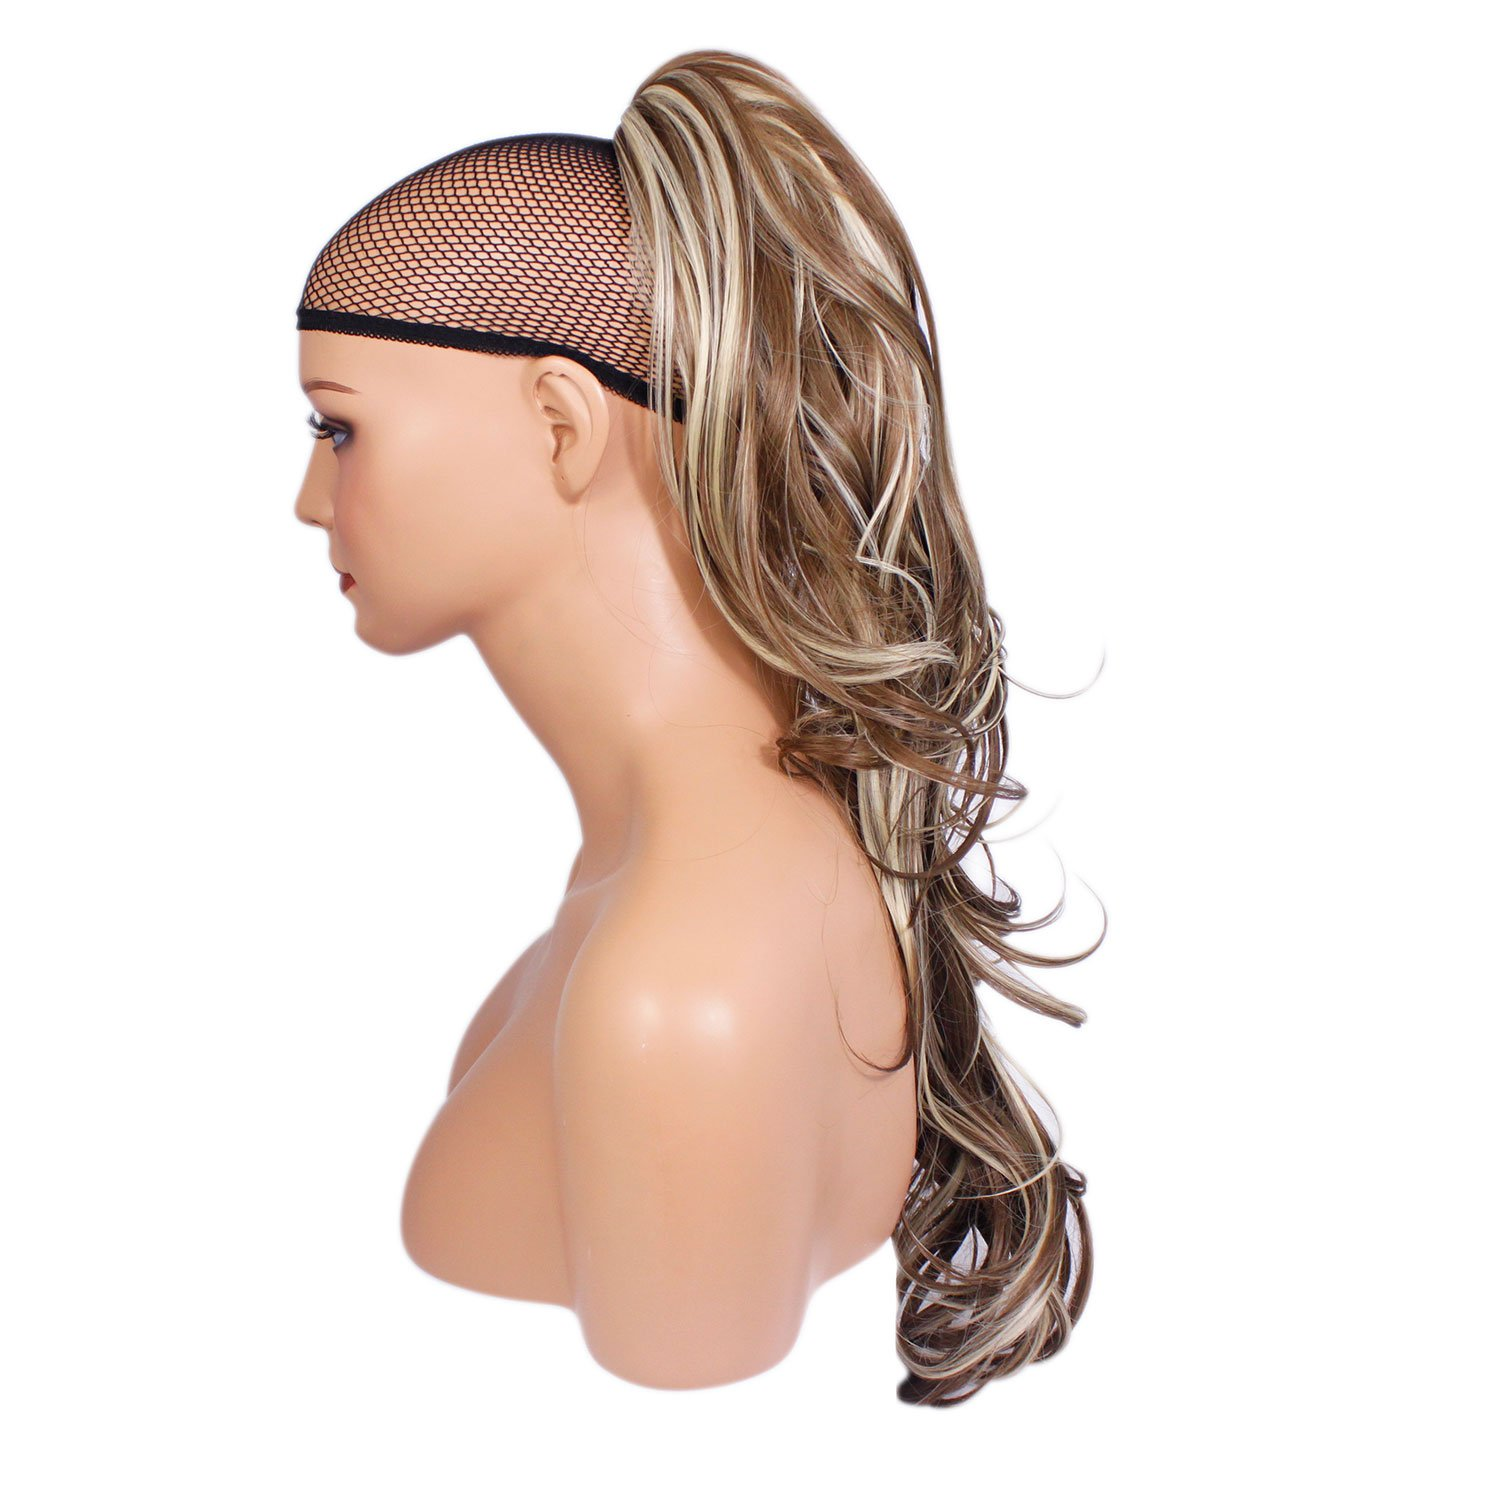 Elegant Hair - 22 PONYTAIL - Style: FLICK - Ash Brown/Blonde Mix #10/613 - REVERSIBLE 2 Styles in 1 - Clip in Hair Piece Extension - Claw Clip Attachment - Weight 250g by Elegant Hair